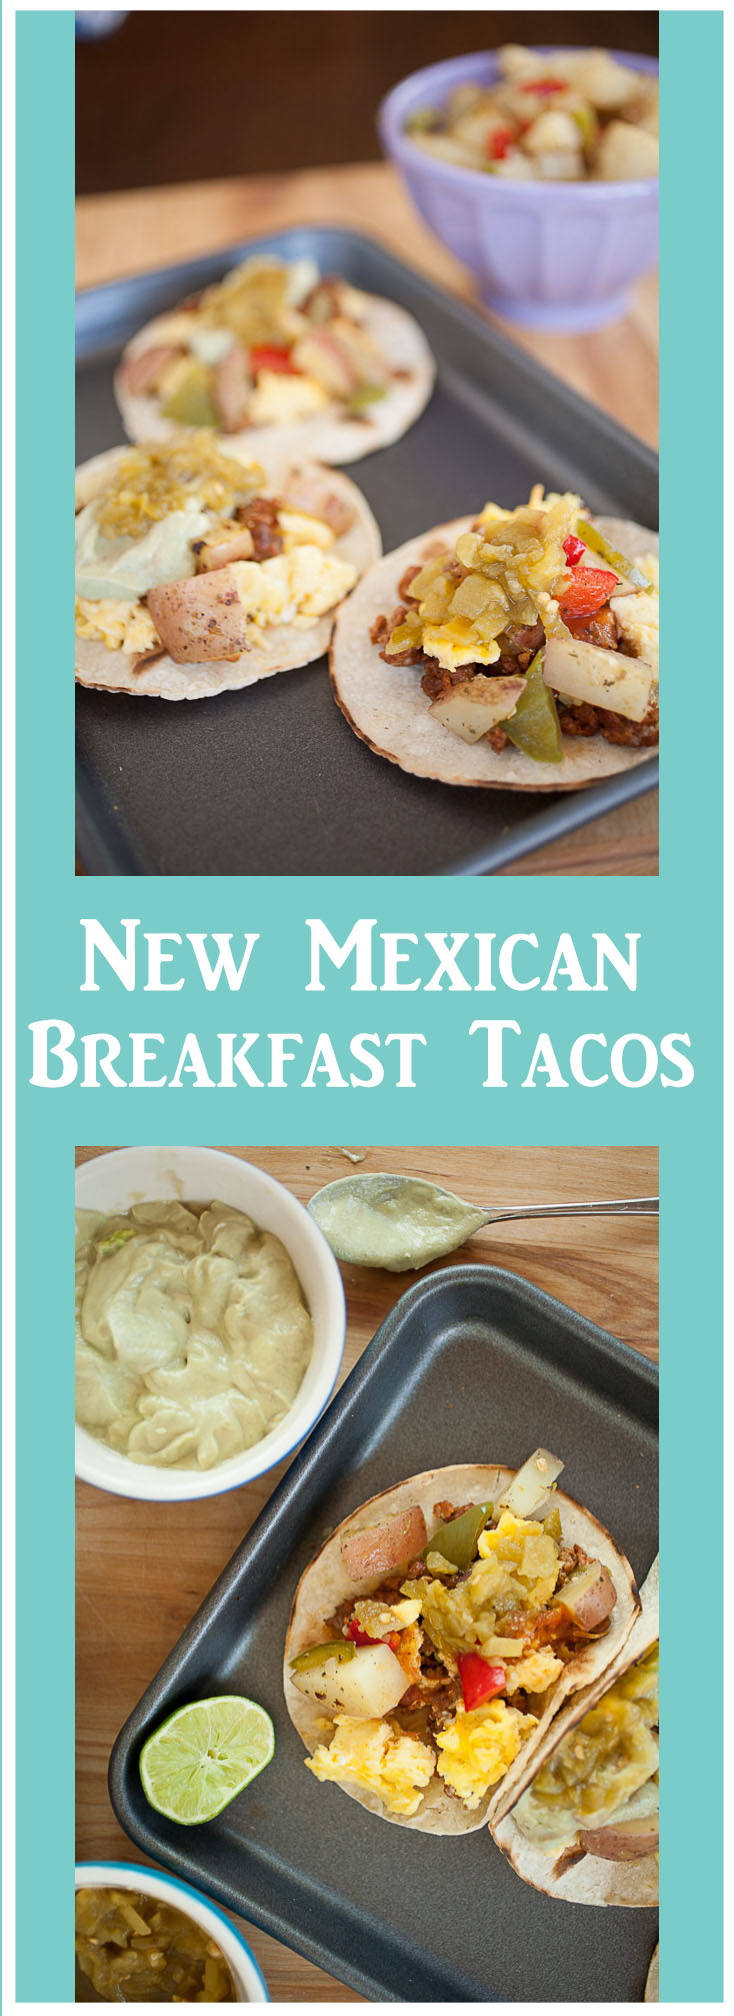 These New Mexican Breakfast Tacos are completely delicious, completely satisfying, and come with a little New Mexican kick thanks to Hatch green chile!